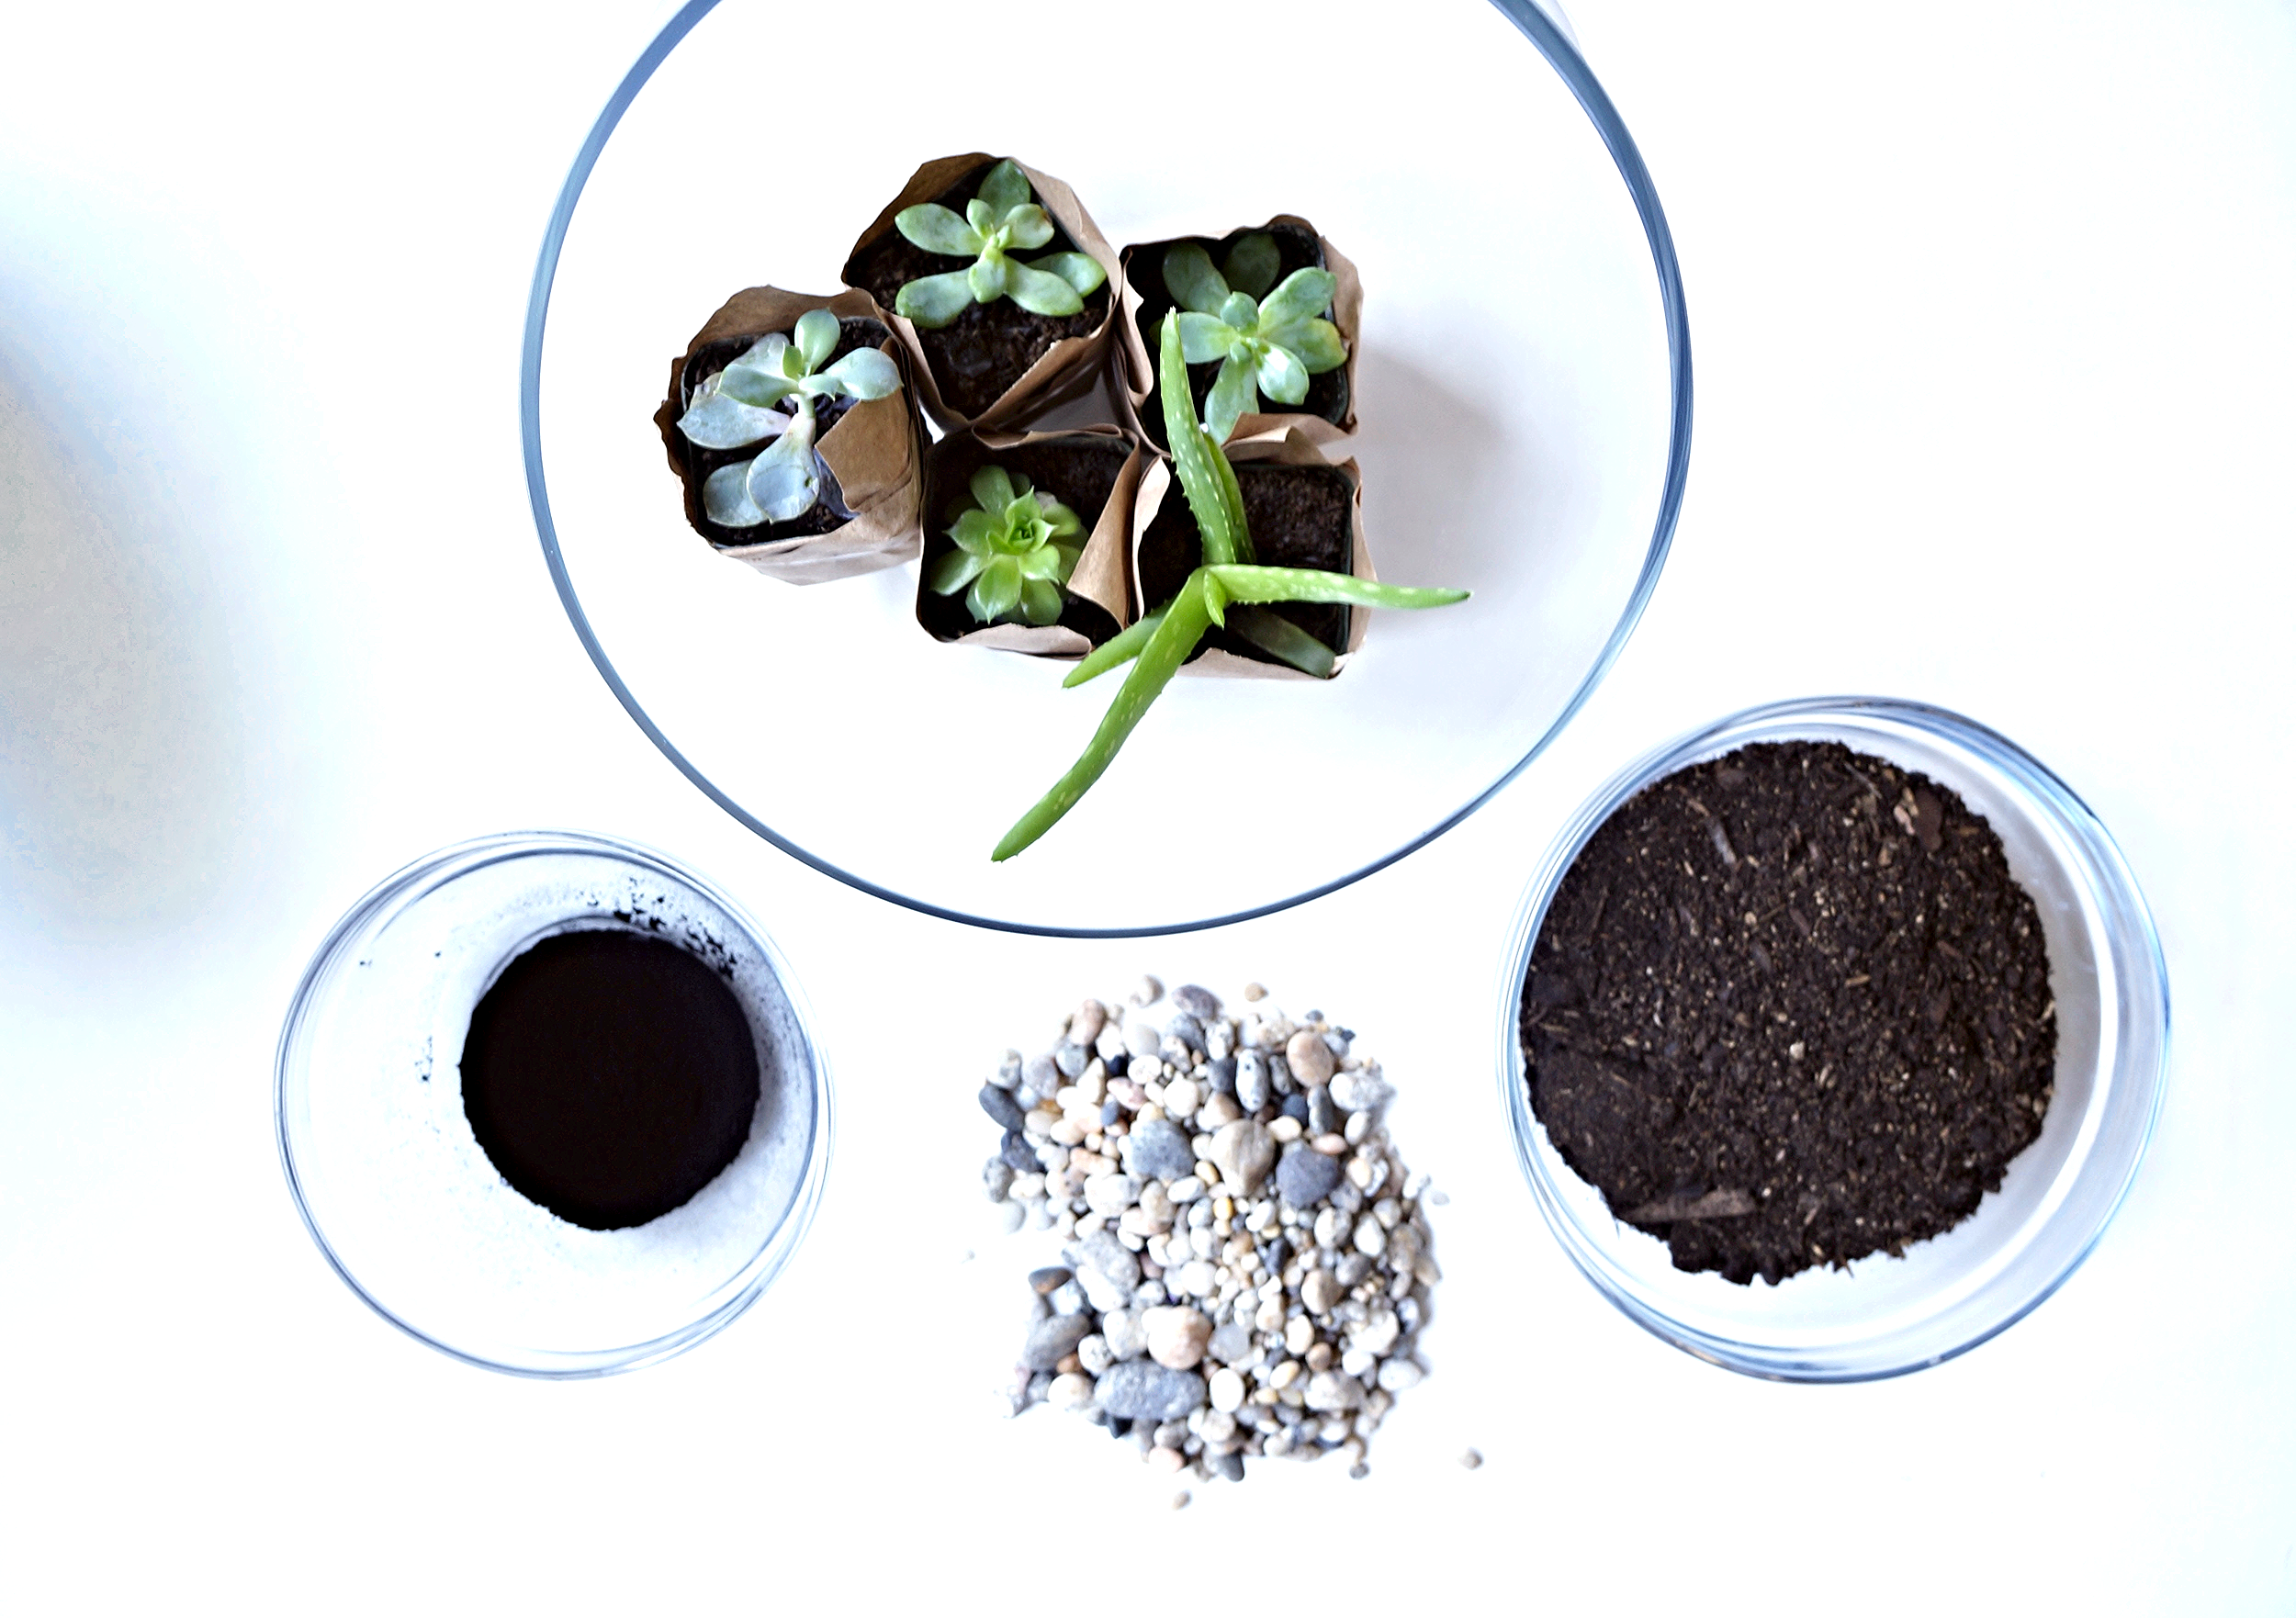 clockwise from top: terrarium container, succulents, potting soil, rocks, activated charcoal powder